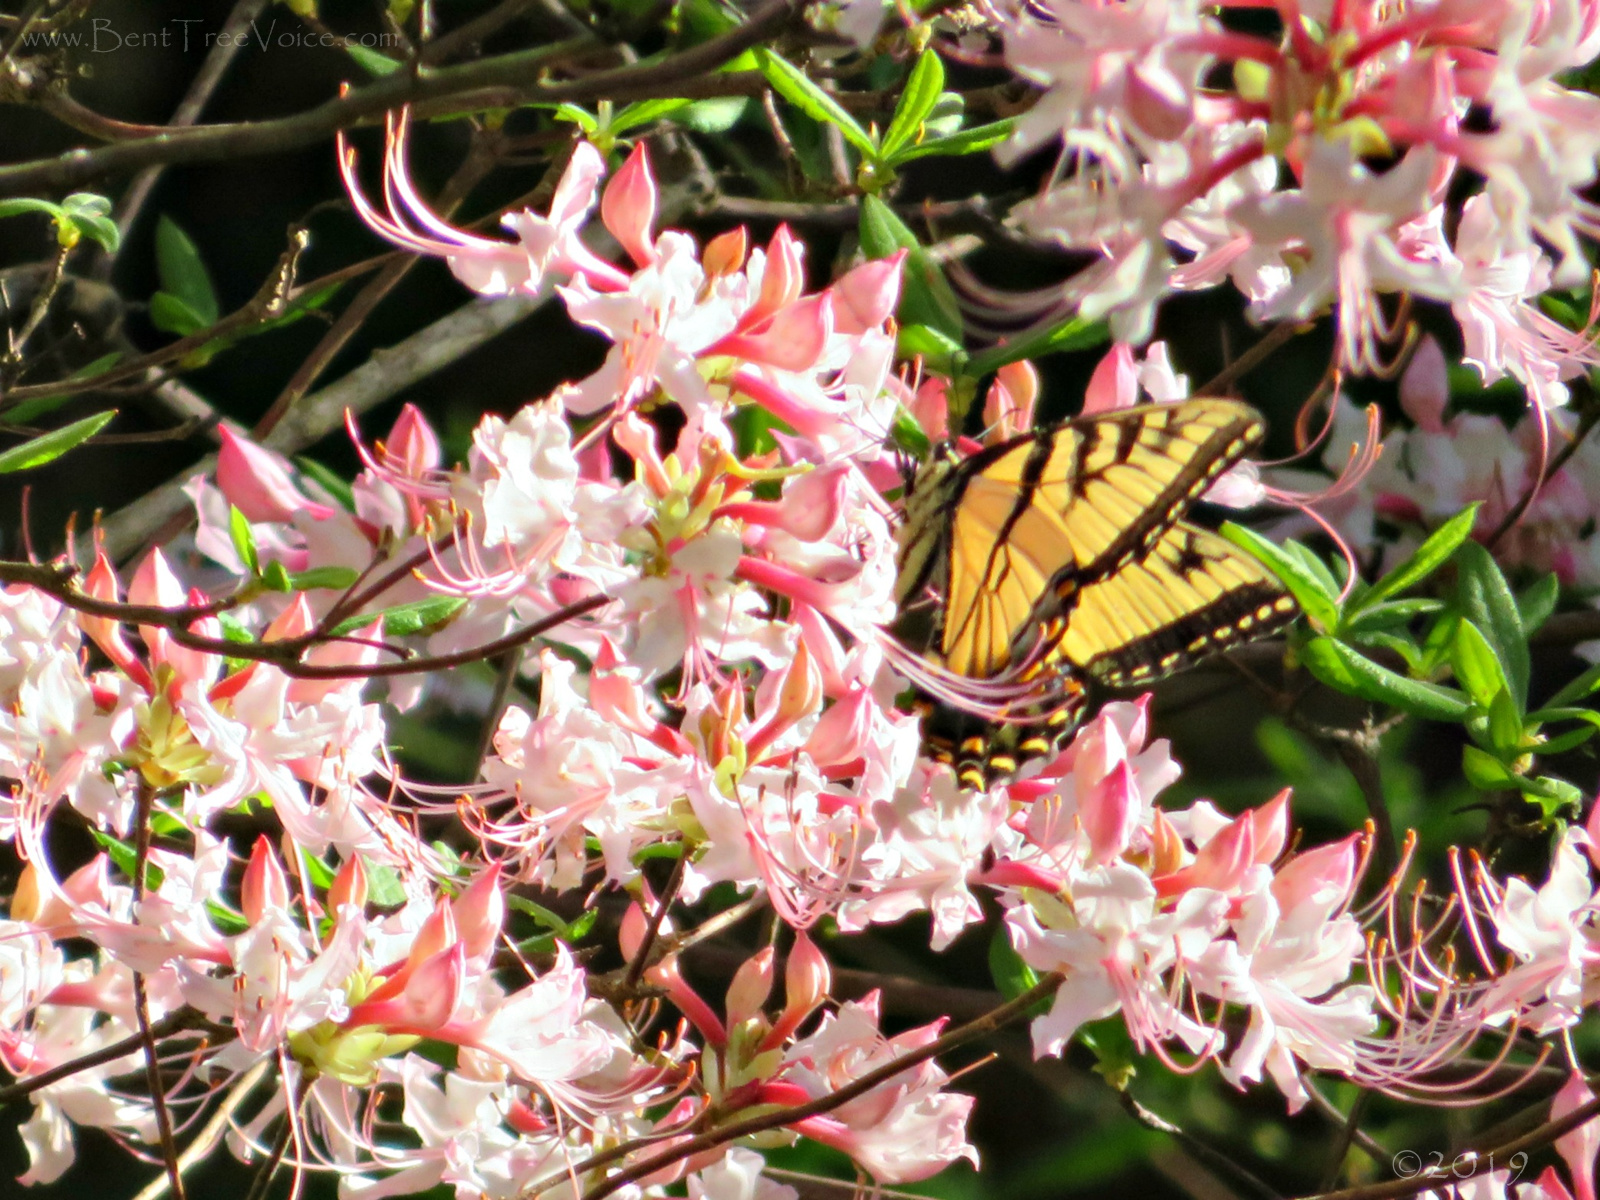 April 17, 2019 - Butterfly on wild azalea in Bent Tree